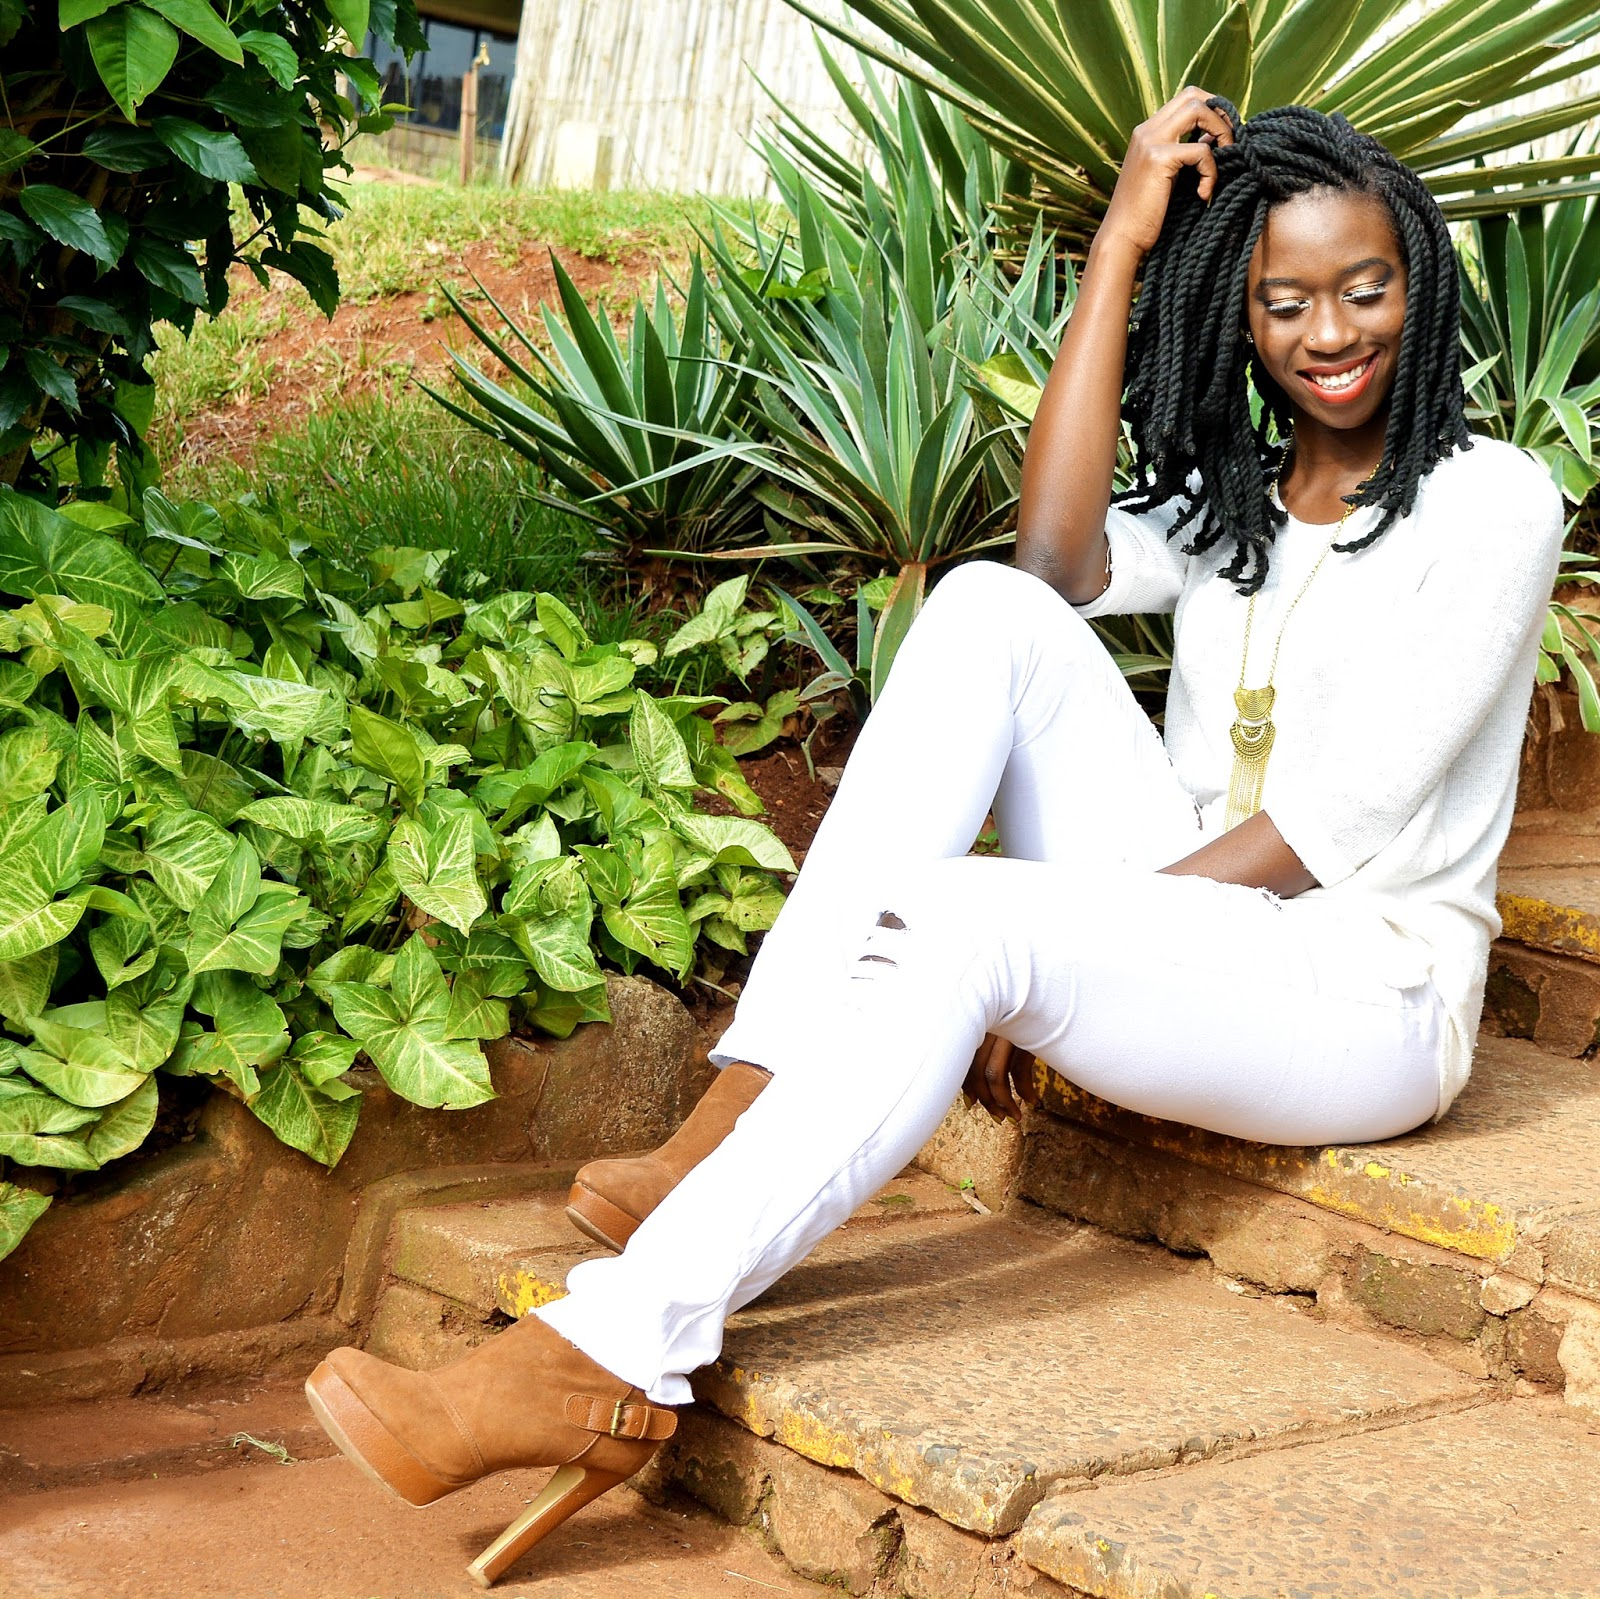 yarn braids, how to style yarn braids, white on white outfit, distressed jeans, african fashion blogger, kenyan fashion blogger. style with ezil, ezil, what to wear, what to wear kenya, our style kenya